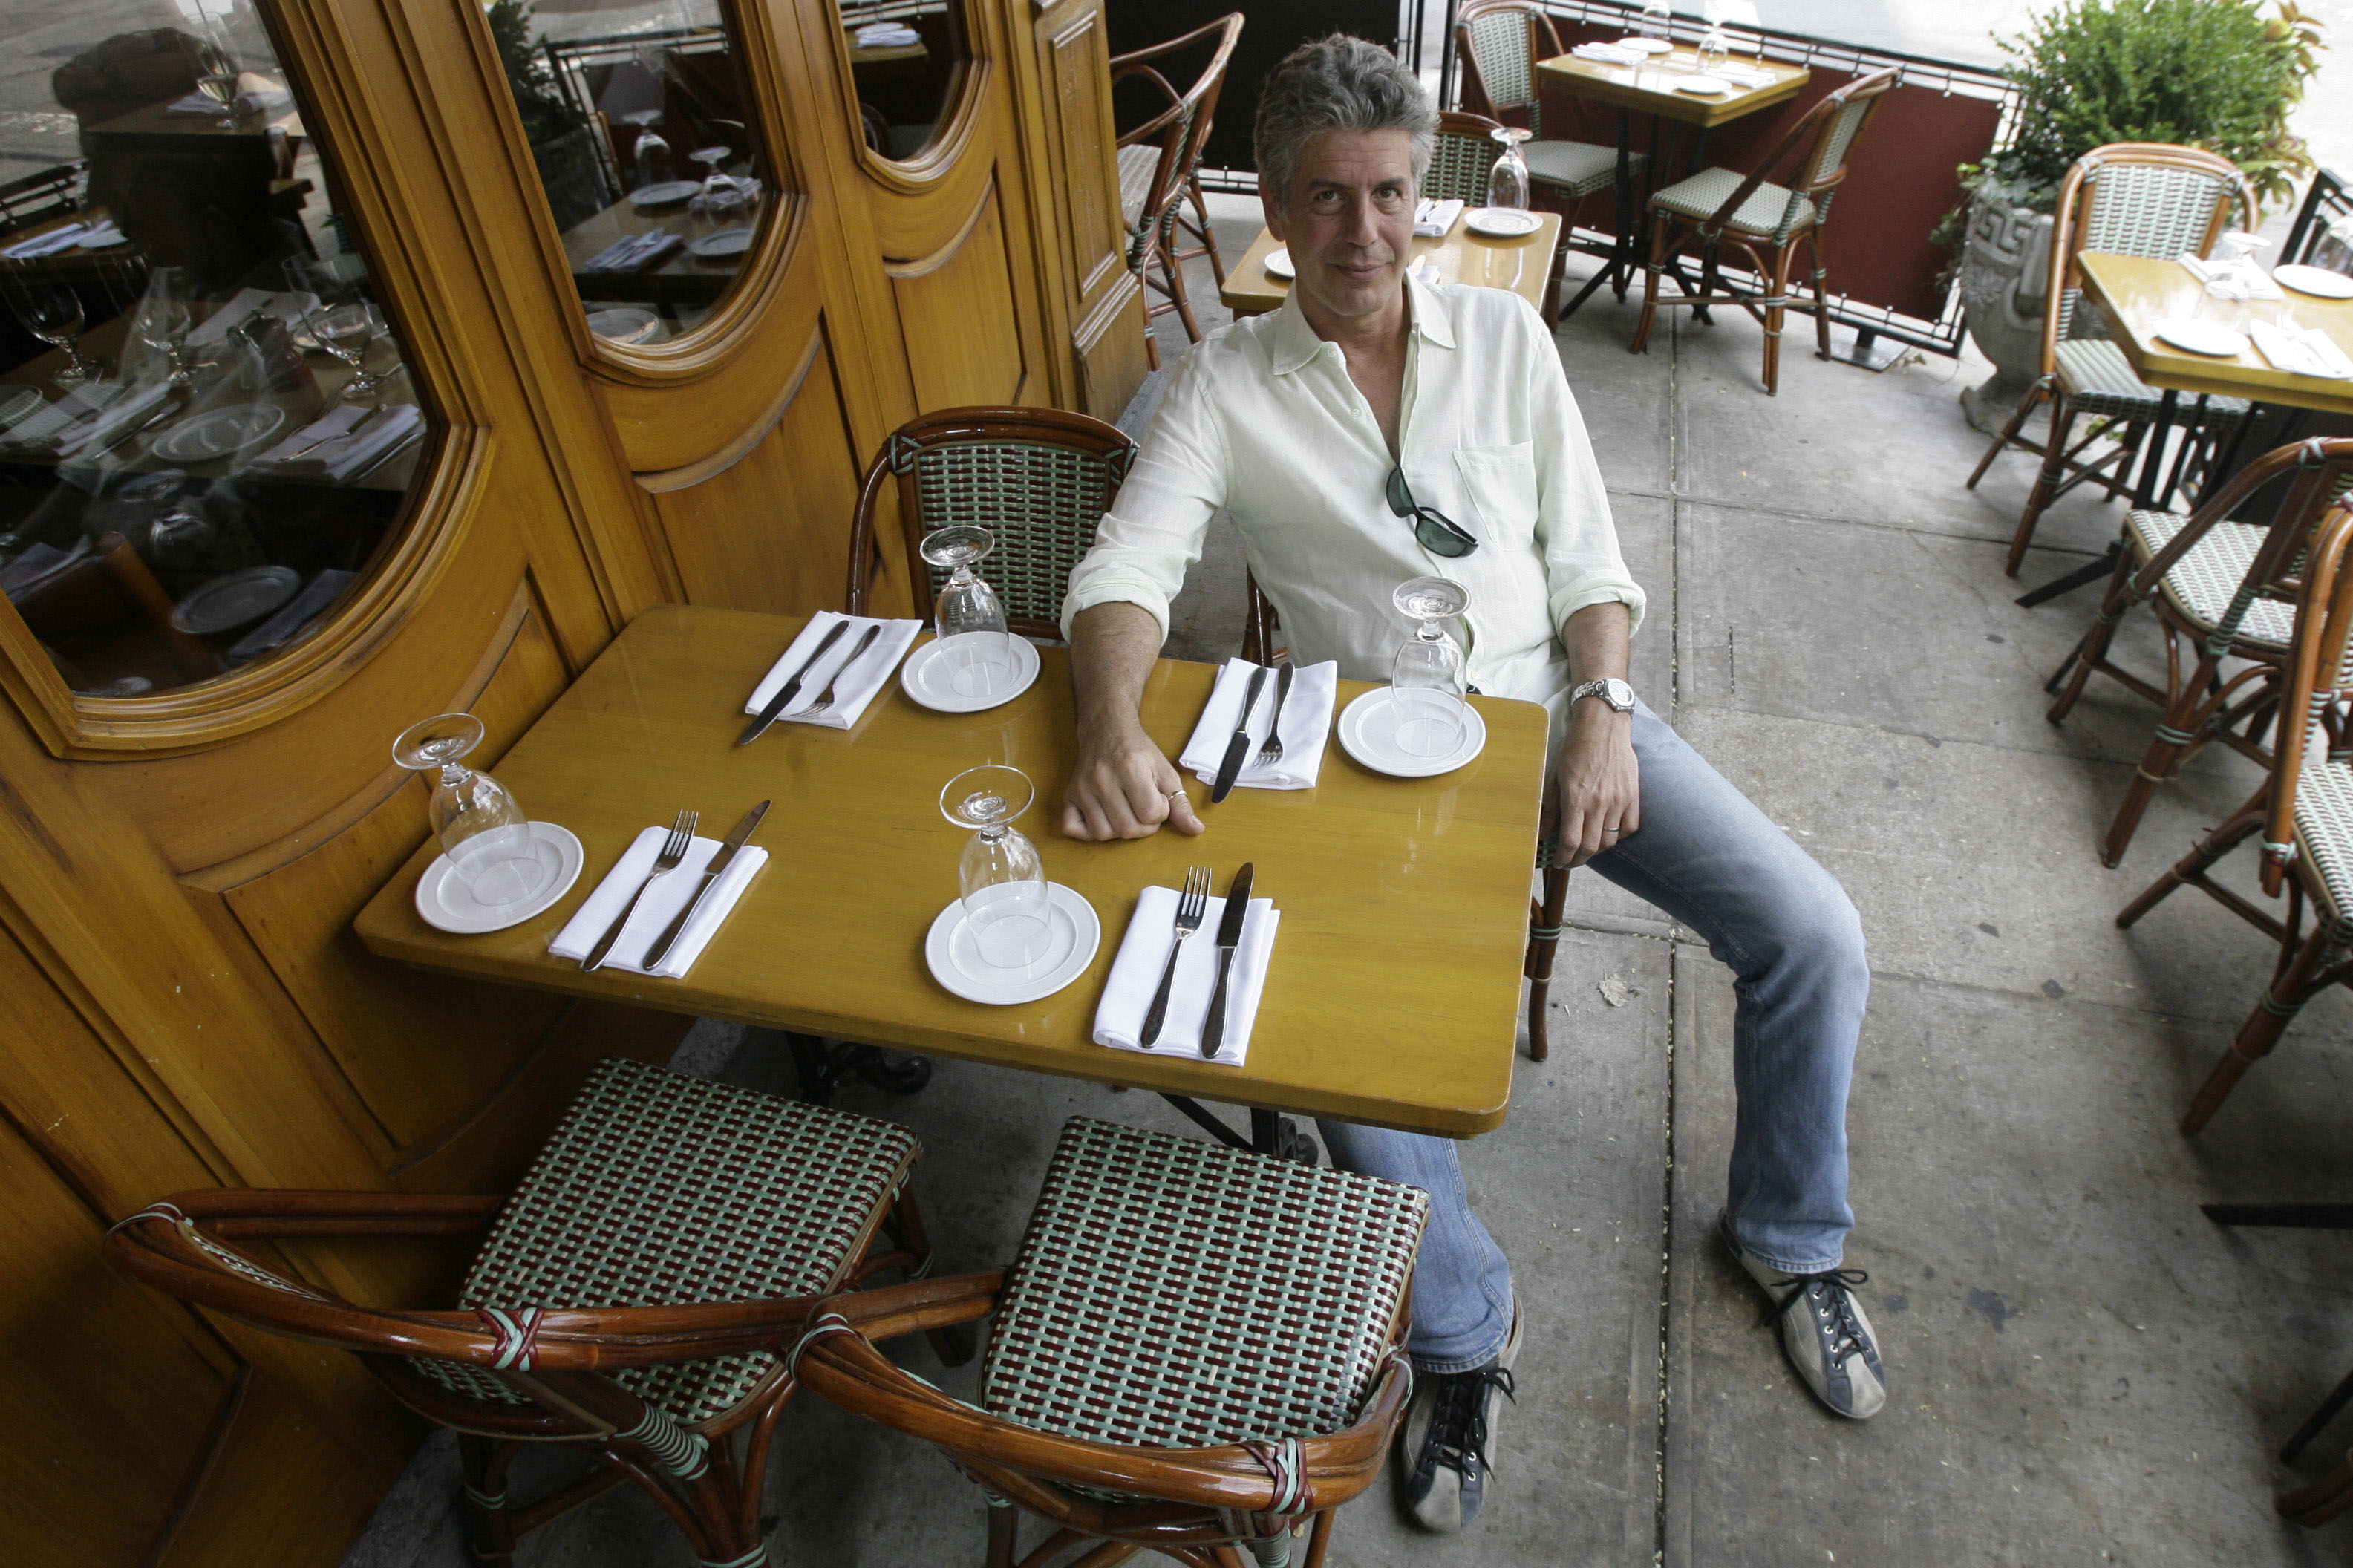 """Anthony Bourdain, host of theTravel Channel's """"No Reservations,"""" poses in a New York restaurant, Wednesday, Aug. 8, 2007."""